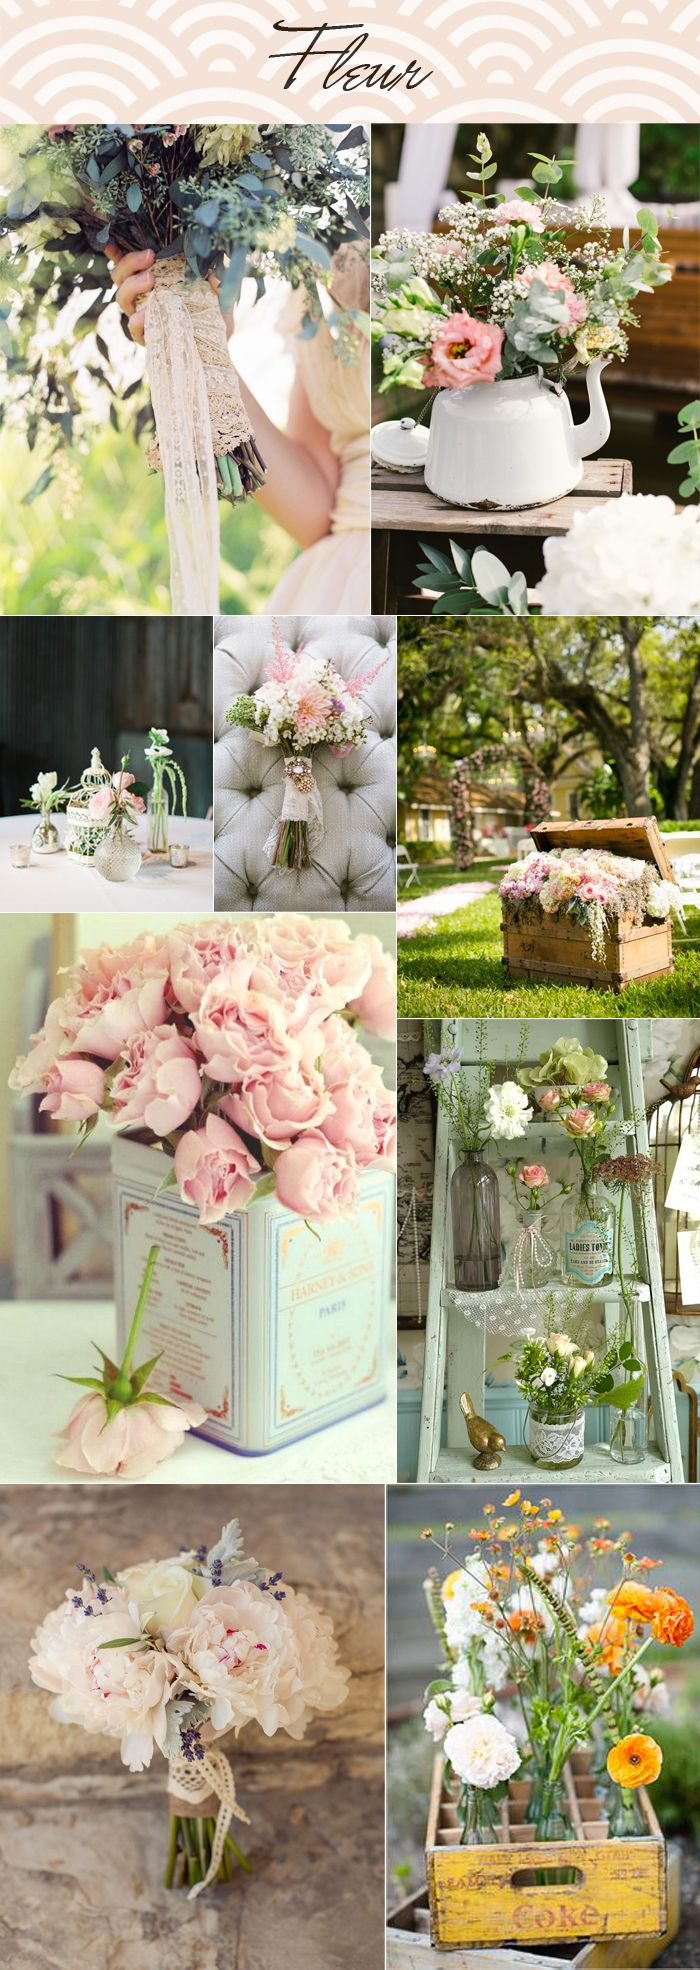 17 best ideas about romantic weddings on pinterest weddings weddings and romantic wedding decor. Black Bedroom Furniture Sets. Home Design Ideas